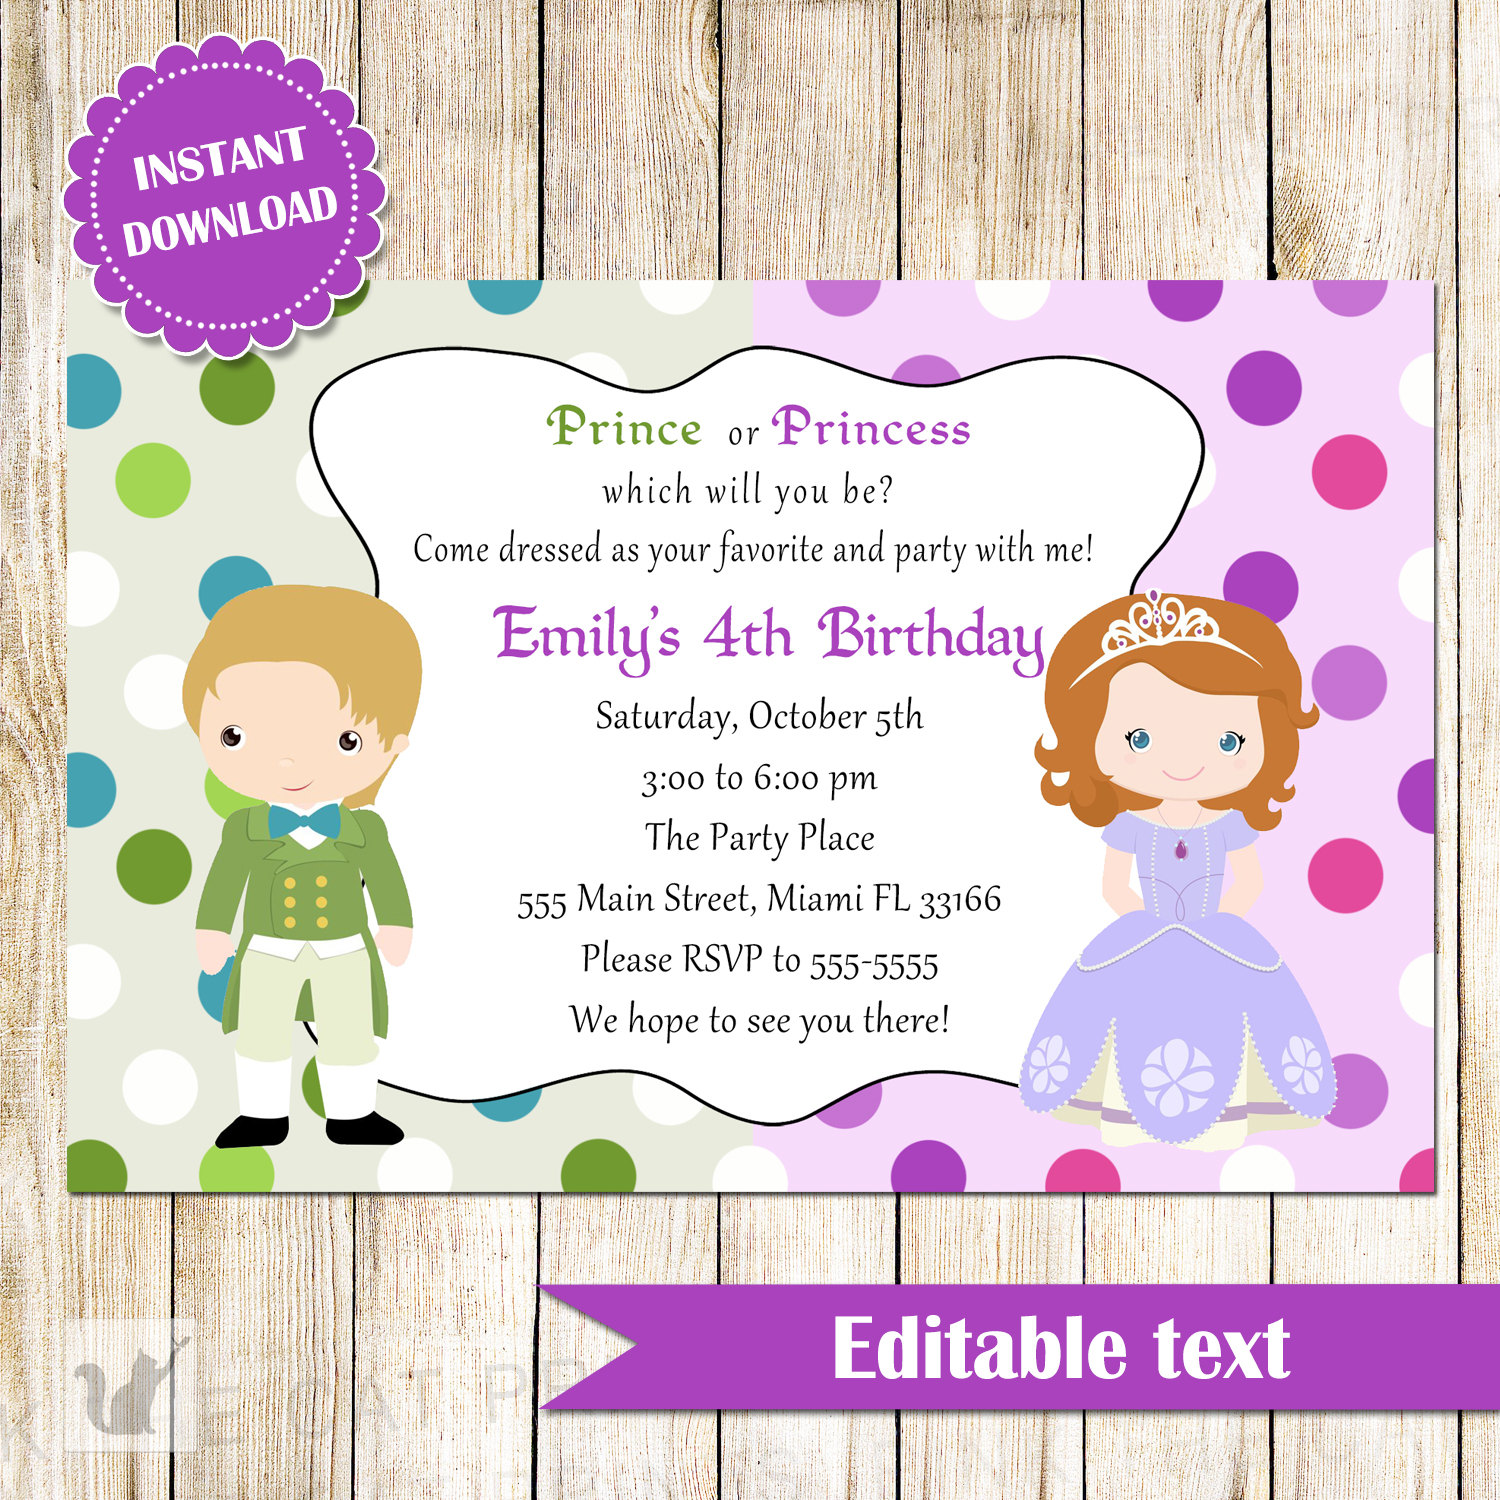 Prince and princess birthday party invitations eczalinf prince and princess birthday party invitations filmwisefo